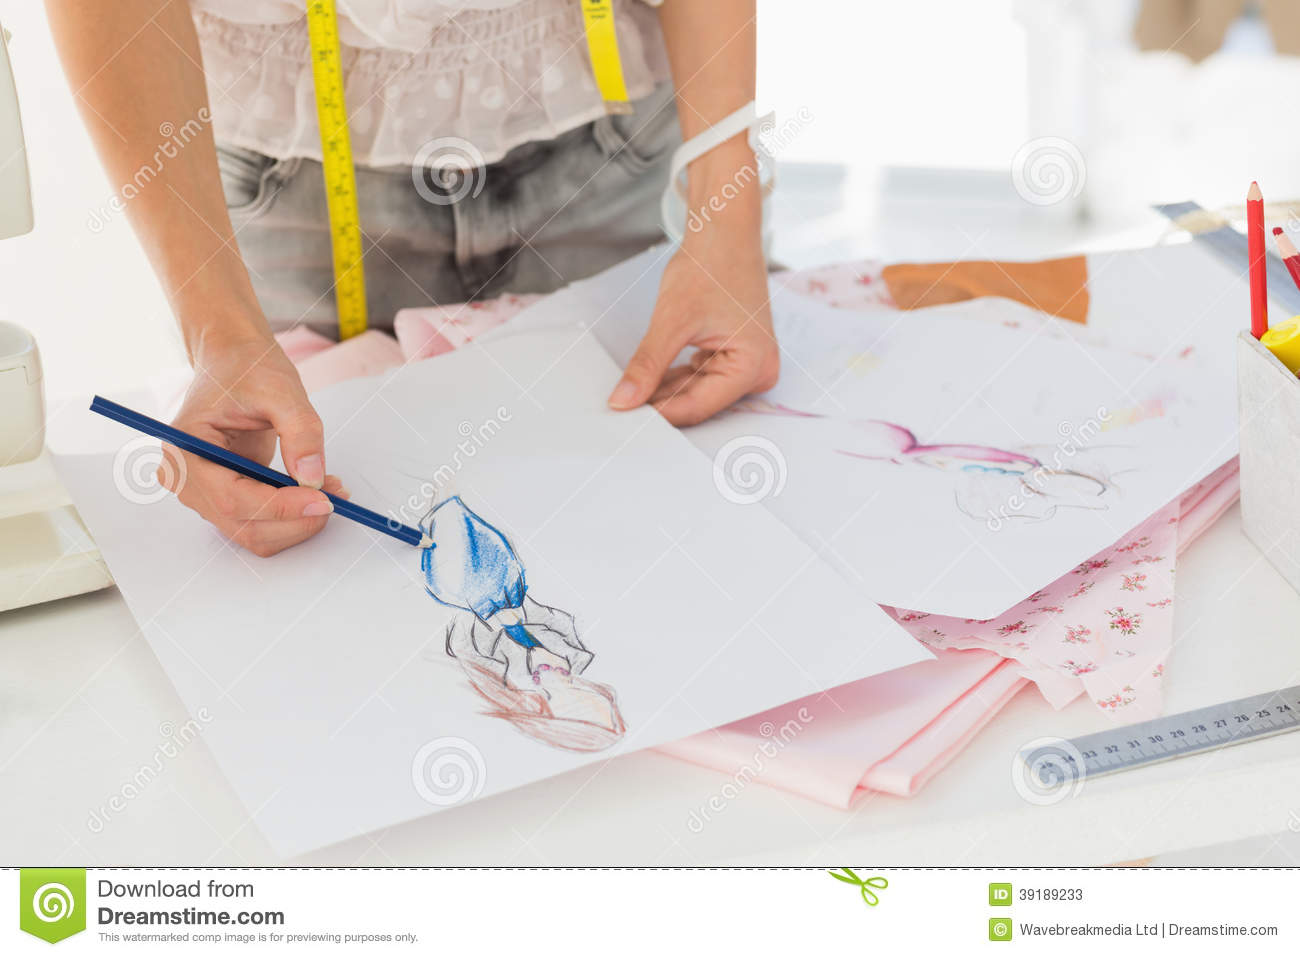 Mid Section Of A Fashion Designer Working On Her Designs Stock Image Image Of Studio View 39189233